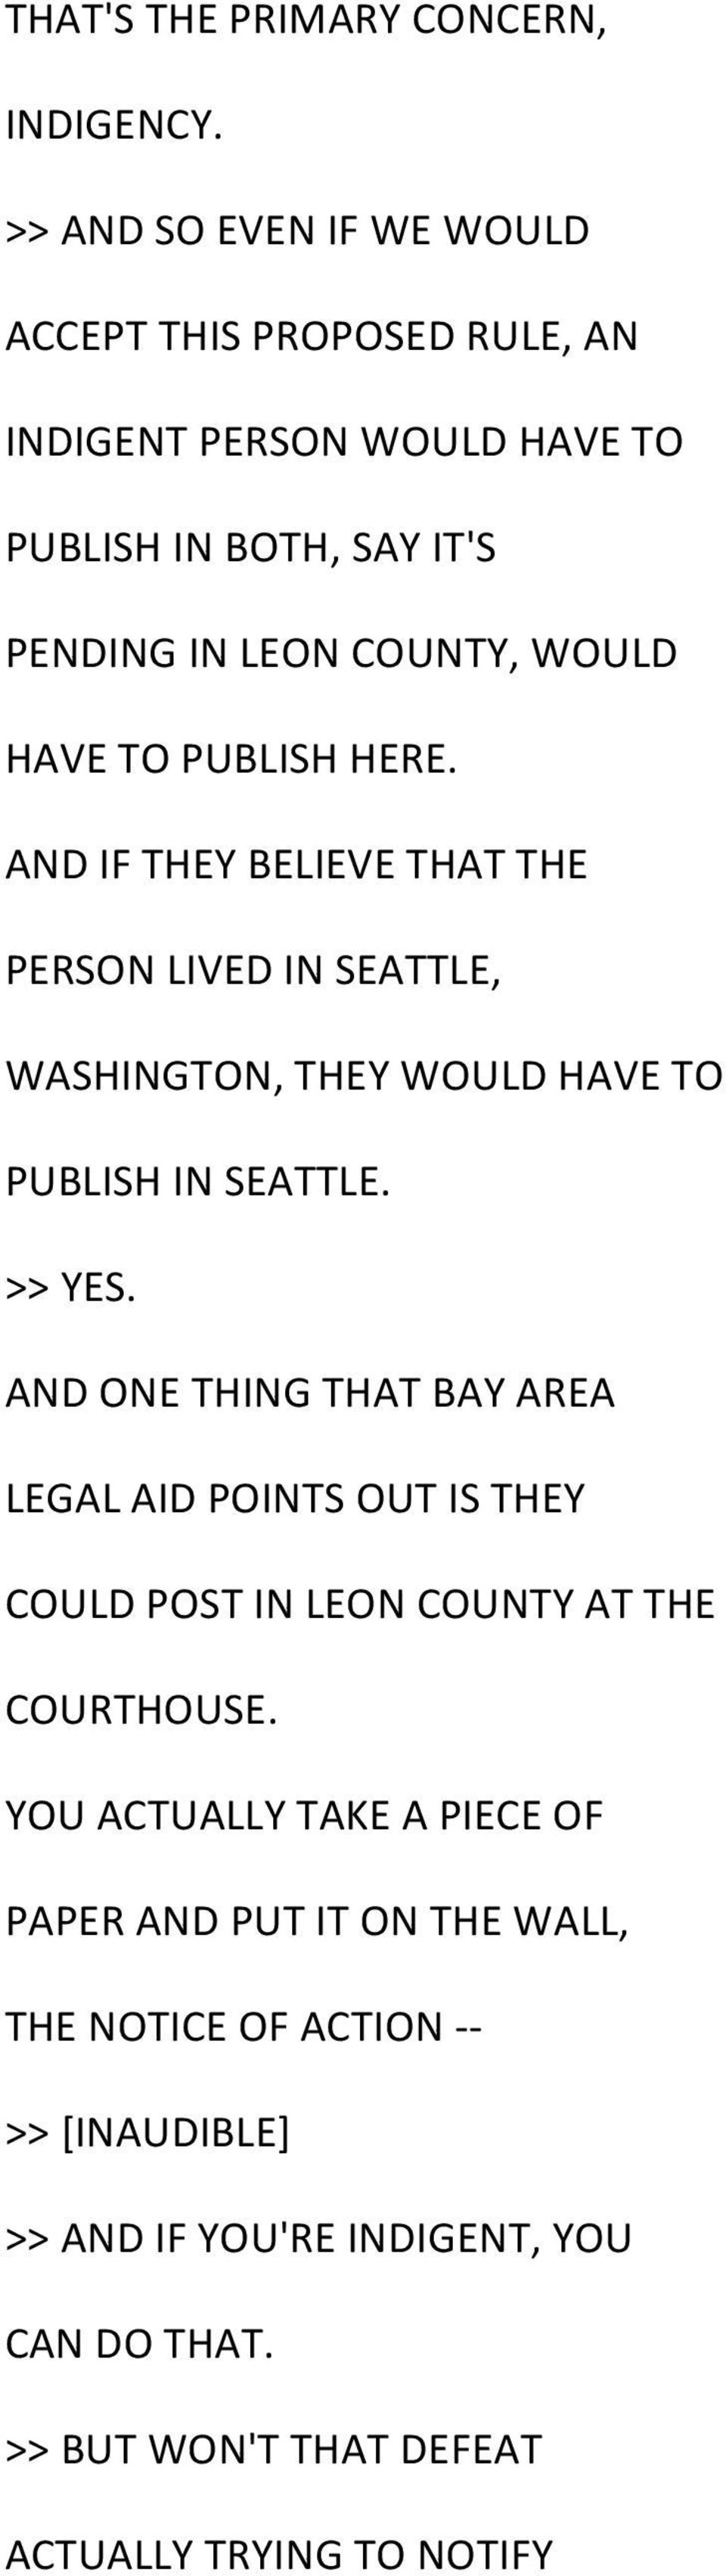 PUBLISH HERE. AND IF THEY BELIEVE THAT THE PERSON LIVED IN SEATTLE, WASHINGTON, THEY WOULD HAVE TO PUBLISH IN SEATTLE. >> YES.